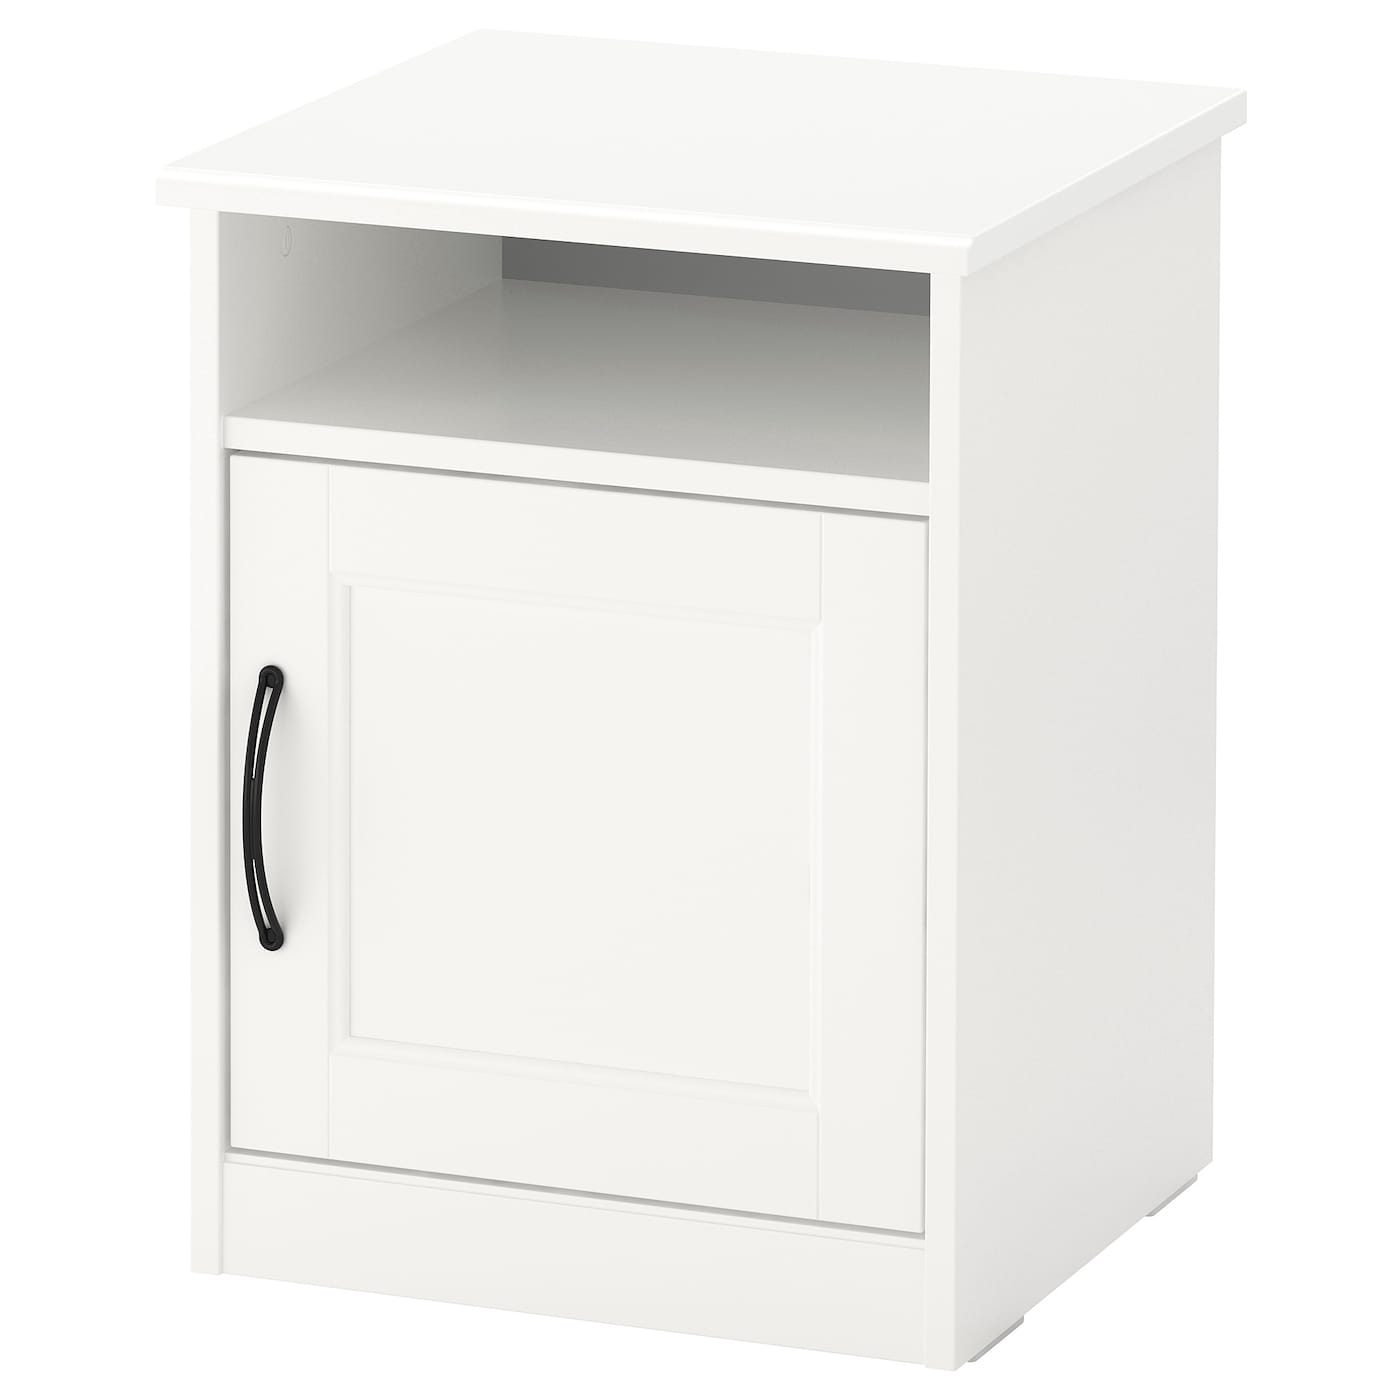 songesand table de chevet blanc 42 x 40 cm ikea. Black Bedroom Furniture Sets. Home Design Ideas